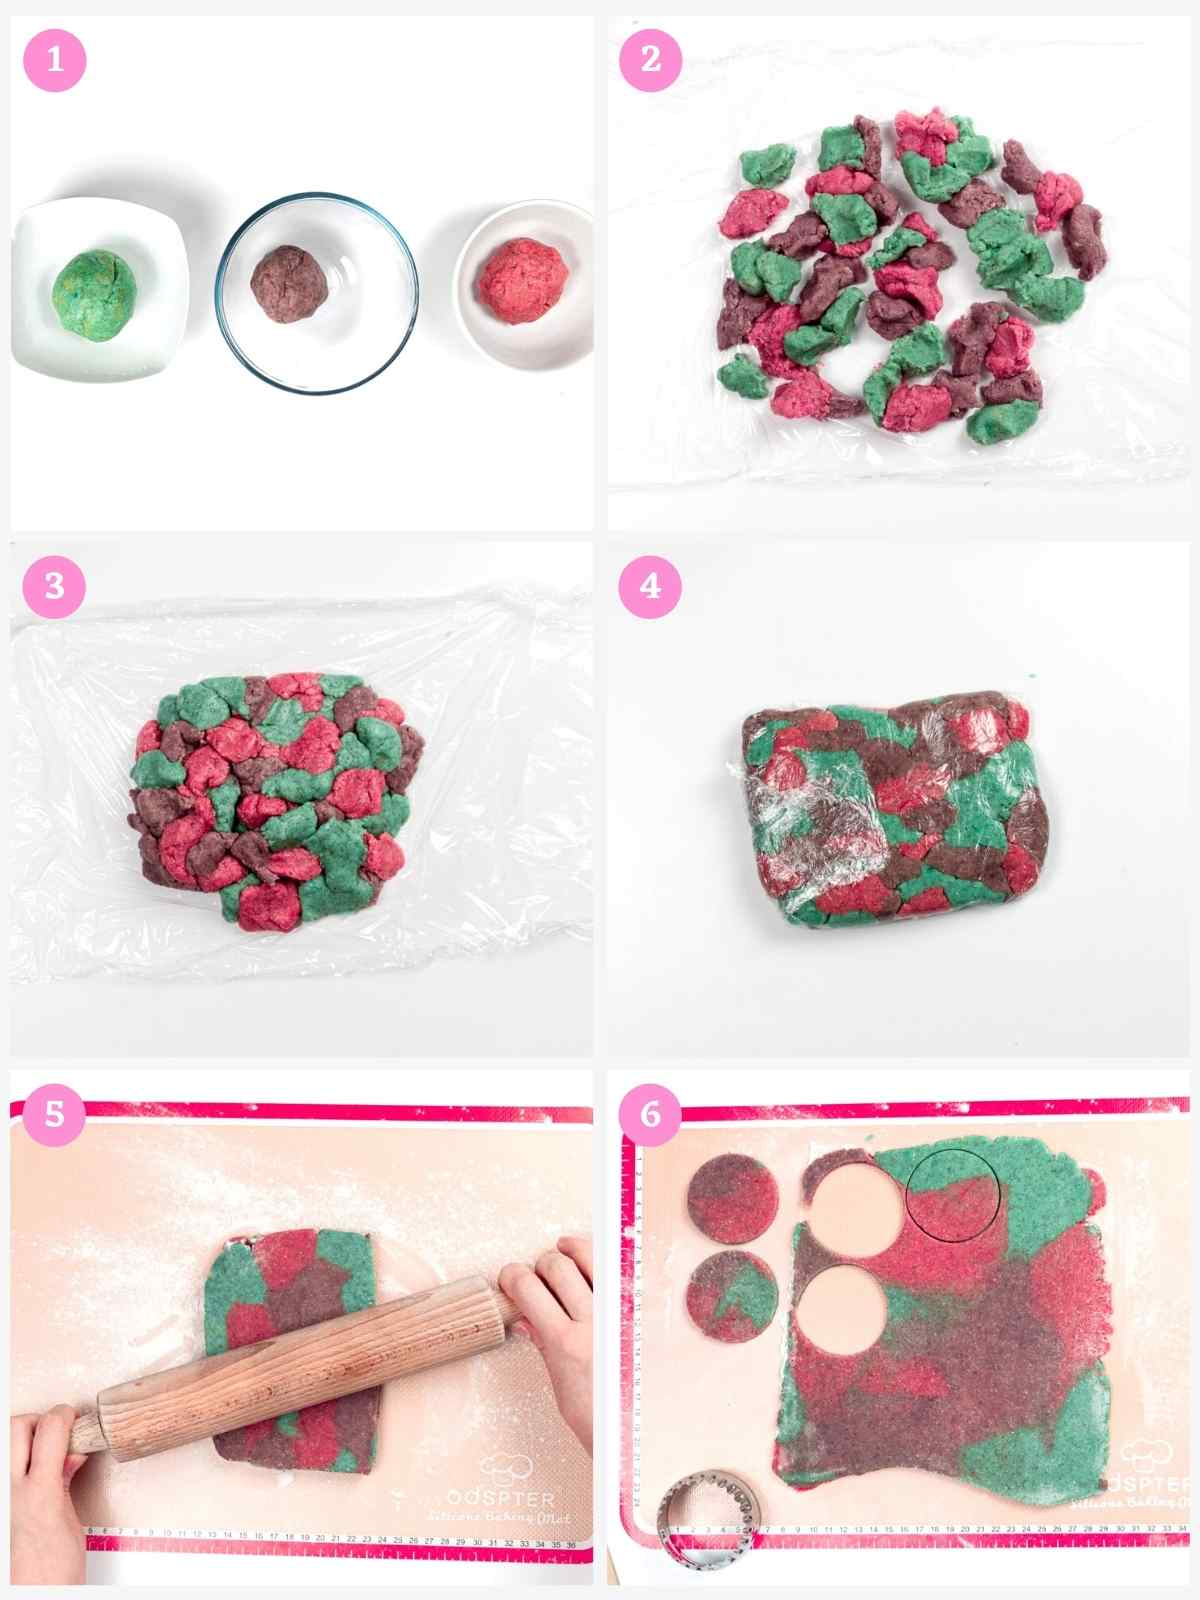 Collage of 6 images showing how to make marble cookies